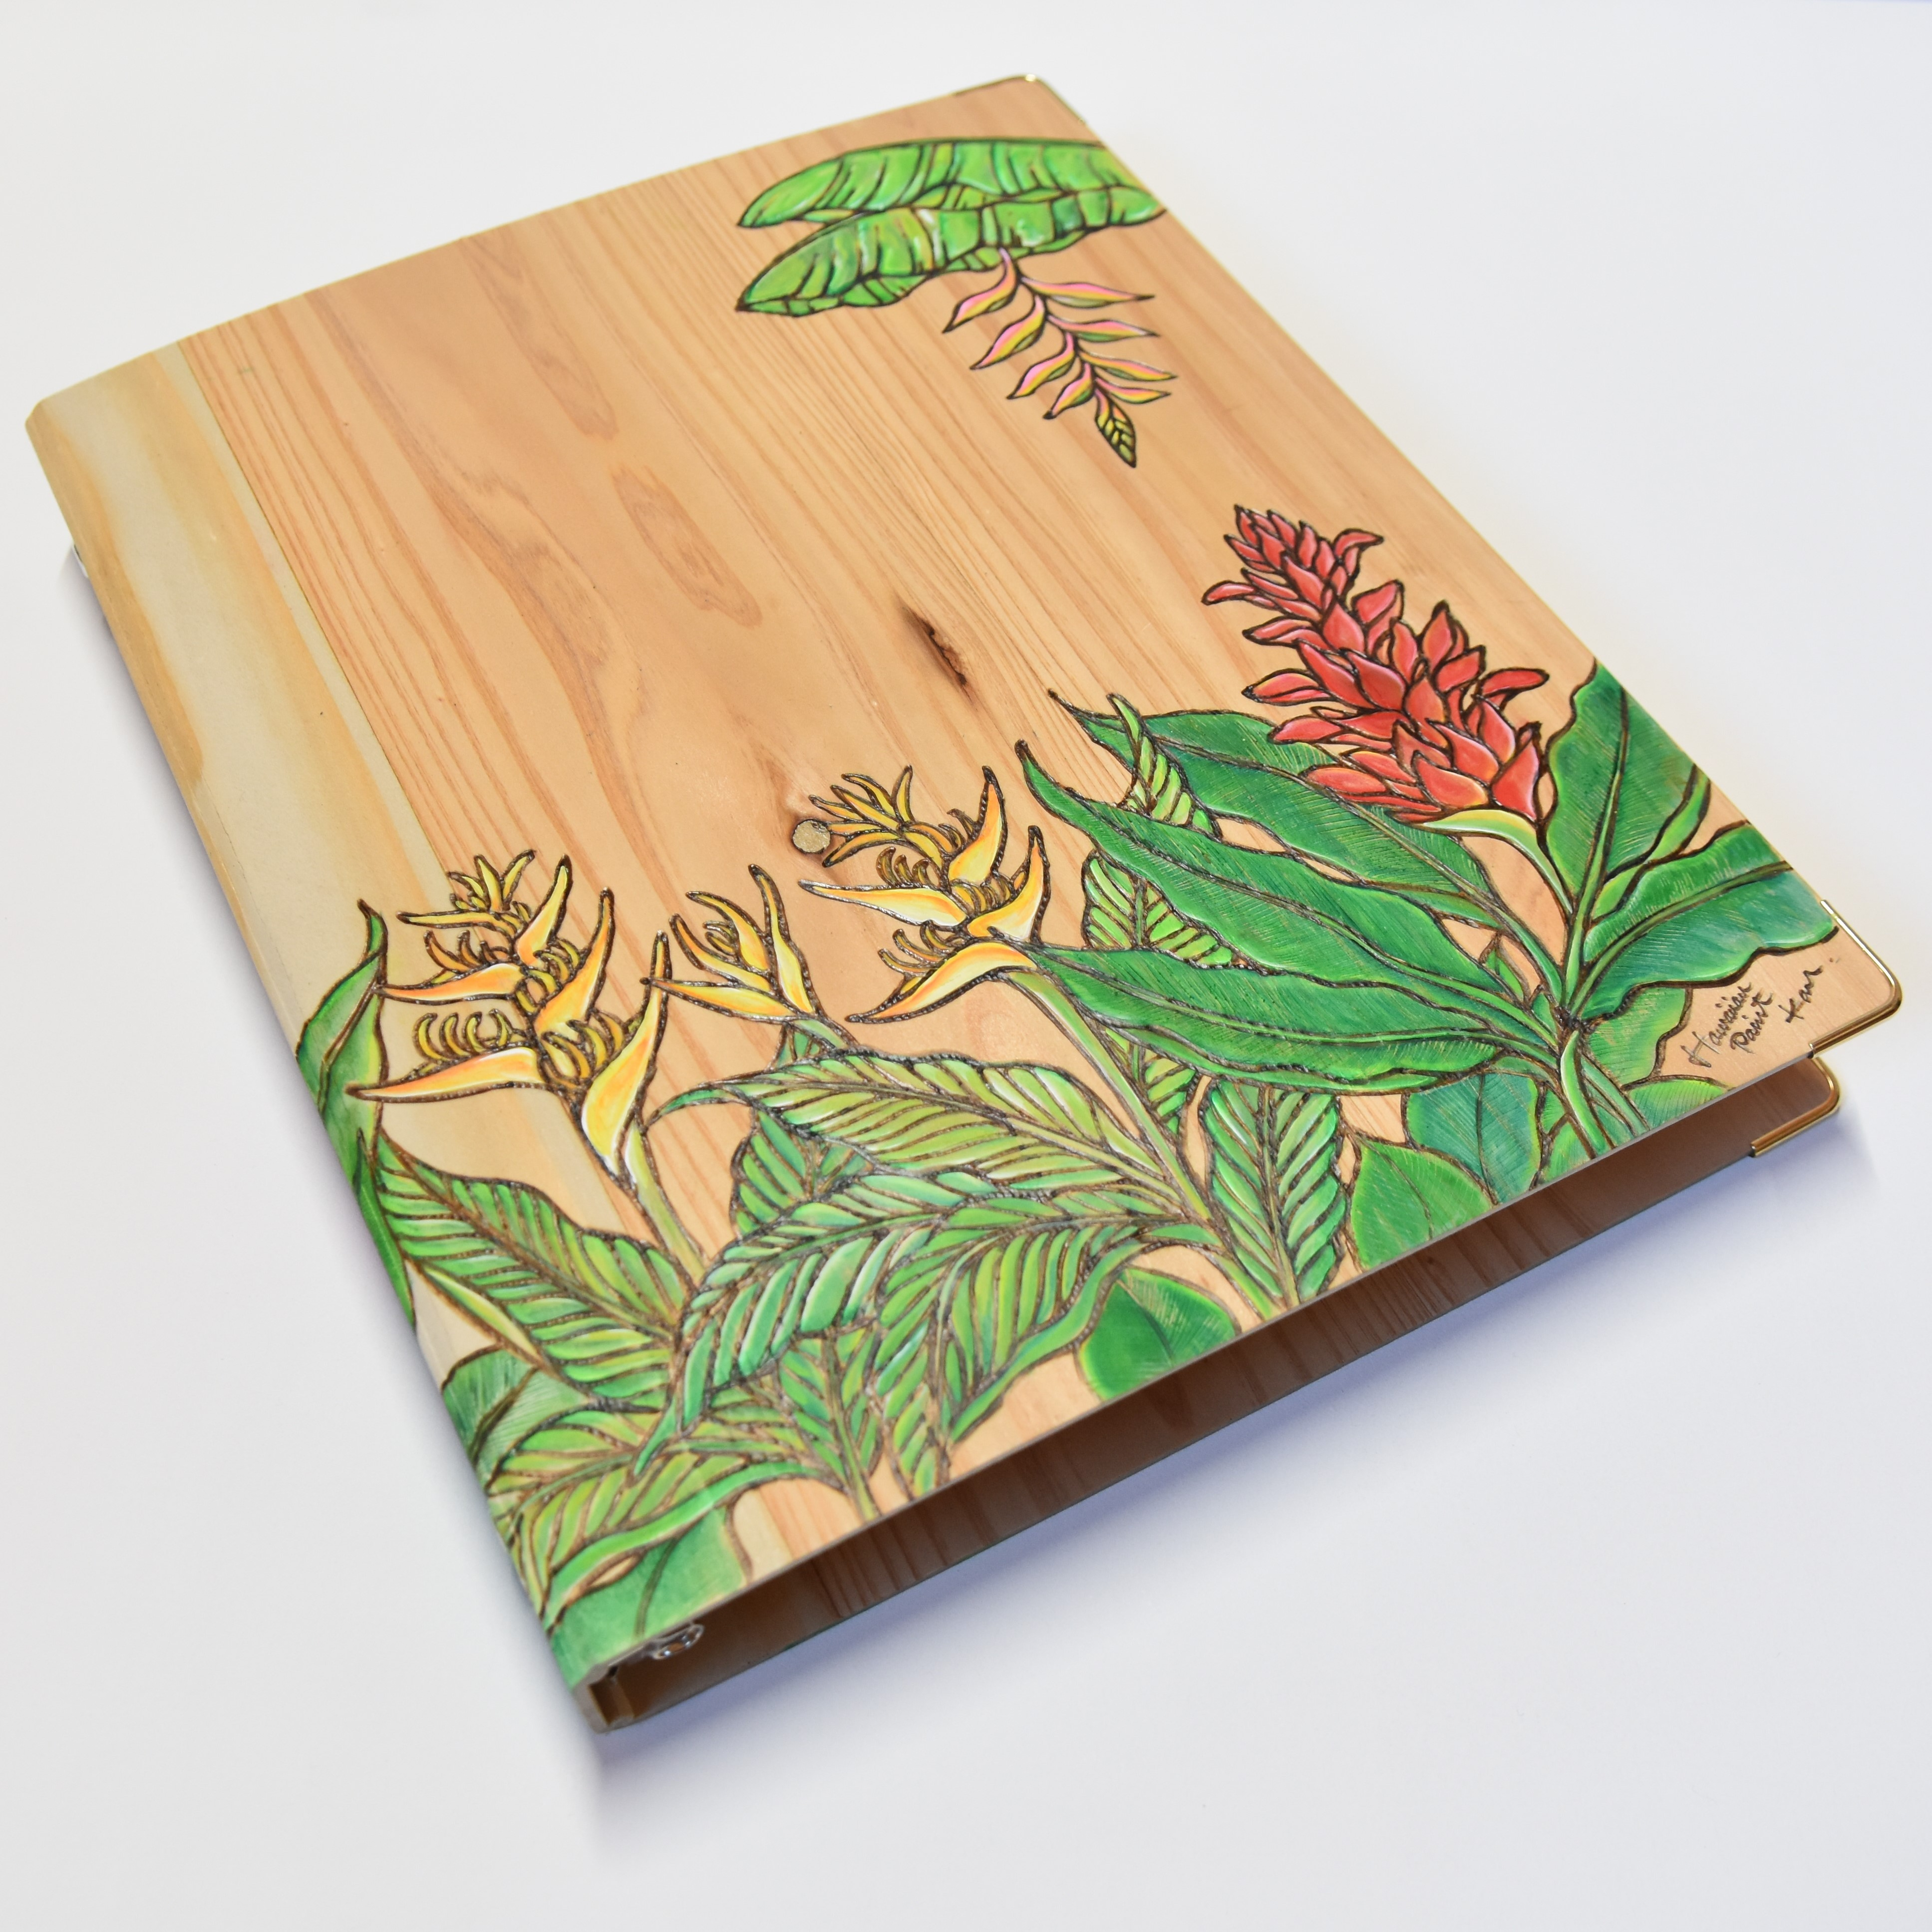 Wood File A4 【Ginger&Heliconia】